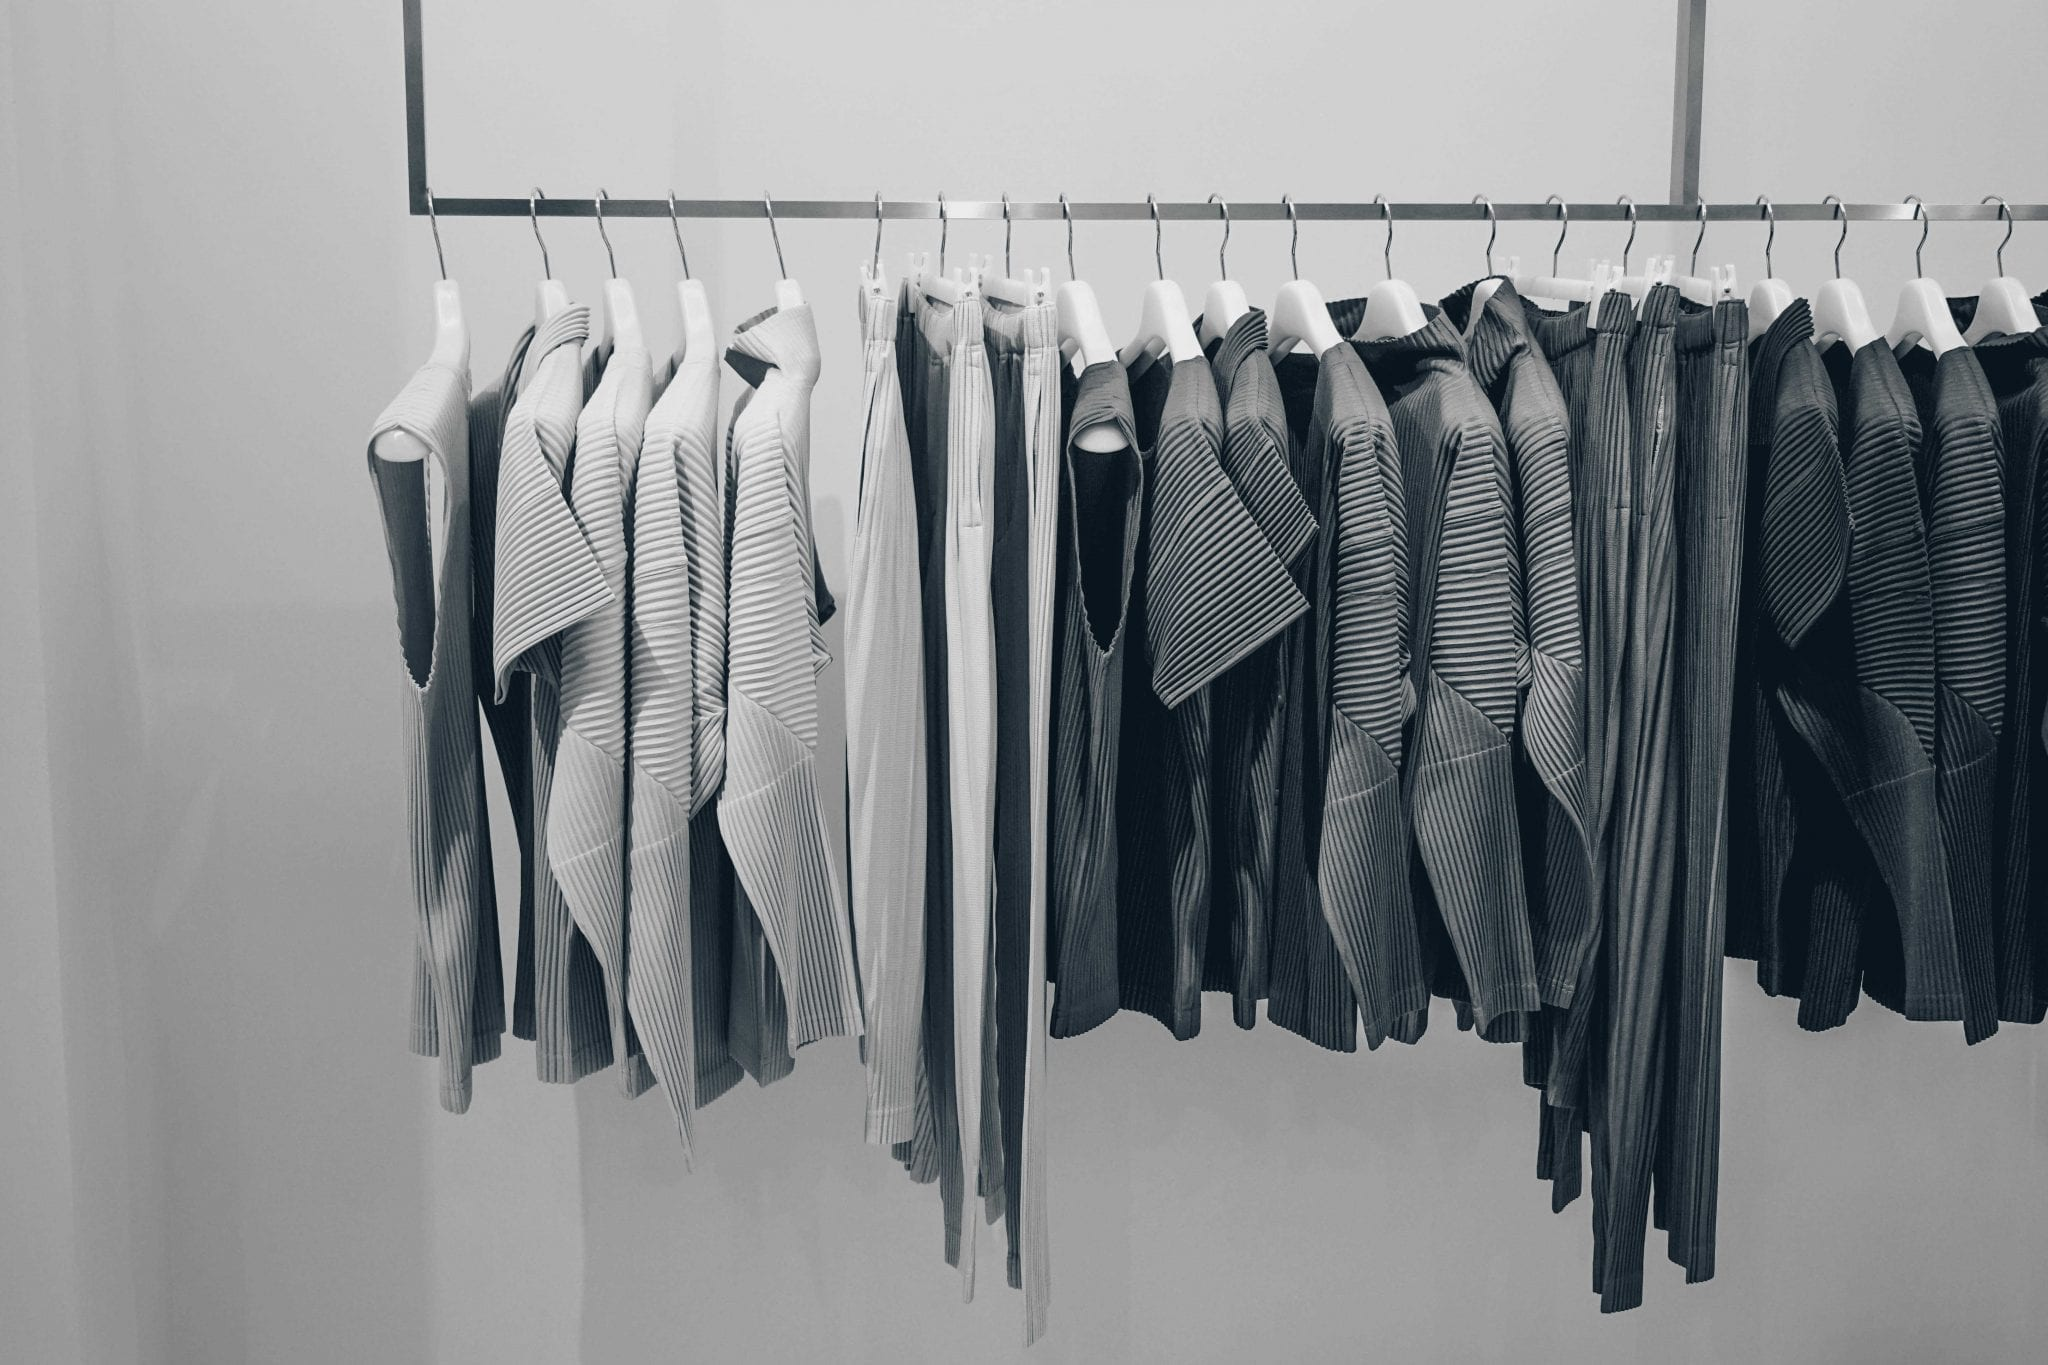 black and white picture of clothes hanging on a rack